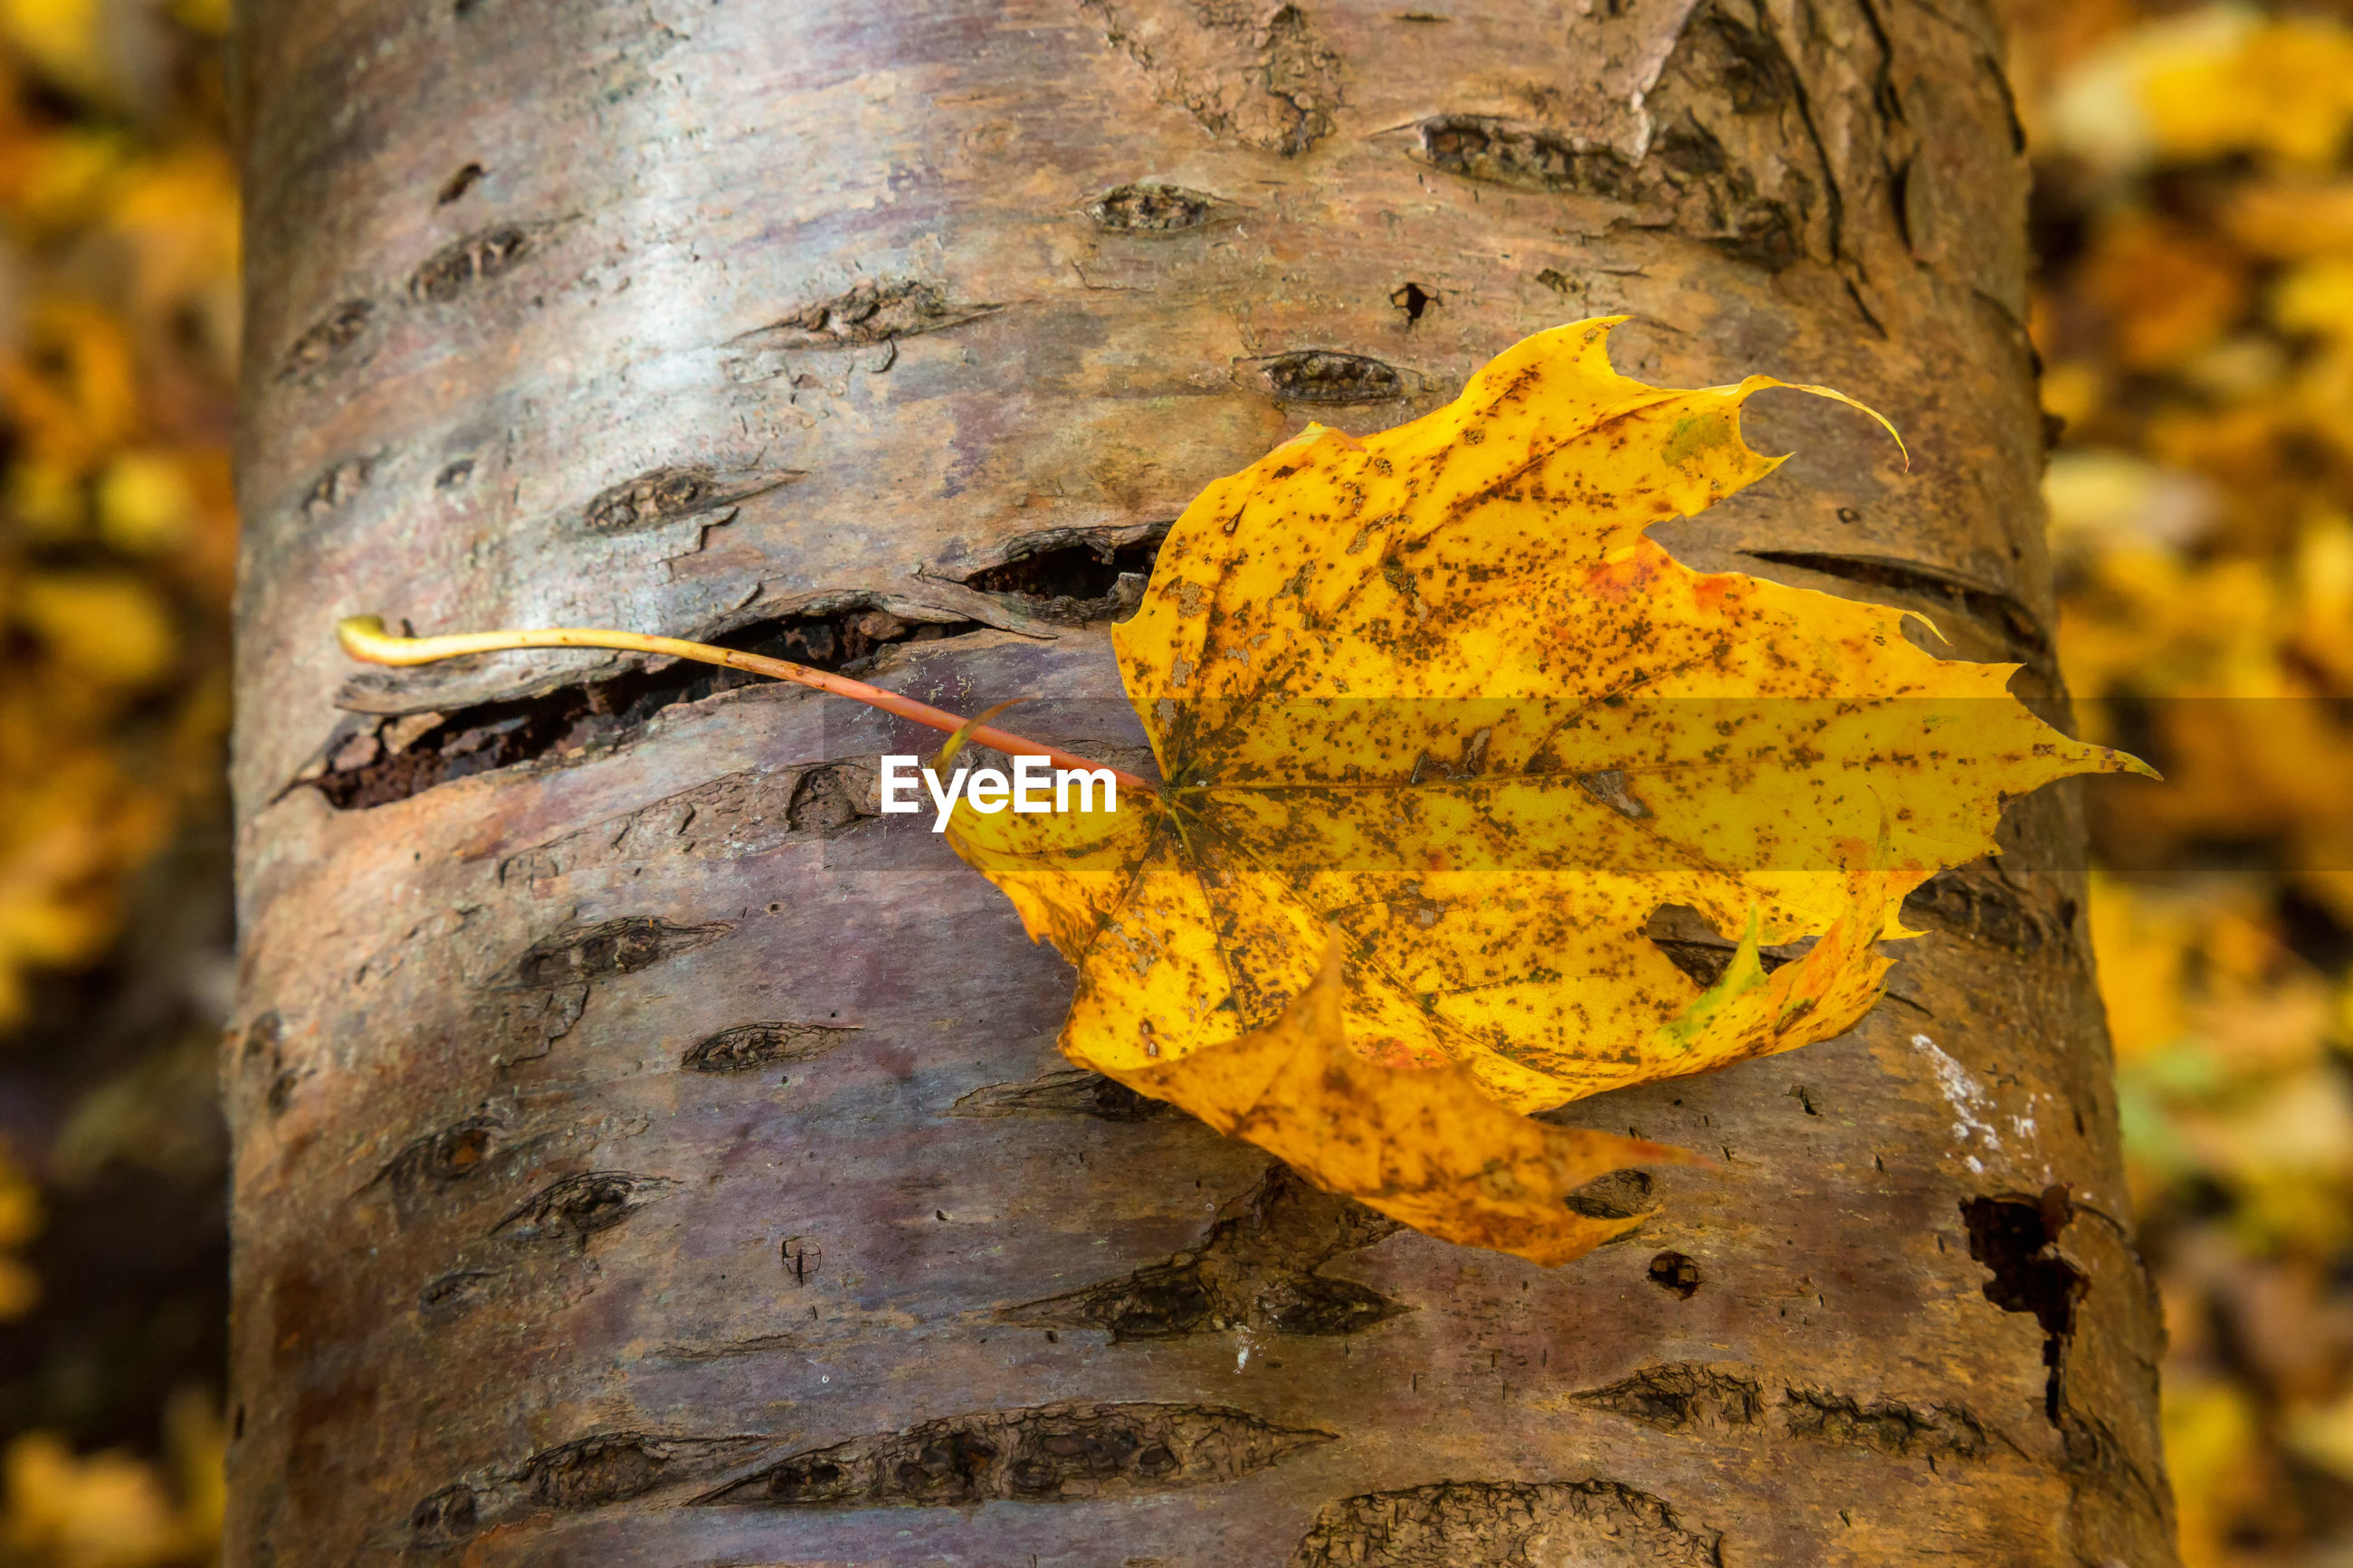 CLOSE-UP OF YELLOW LEAF AGAINST TREE TRUNK